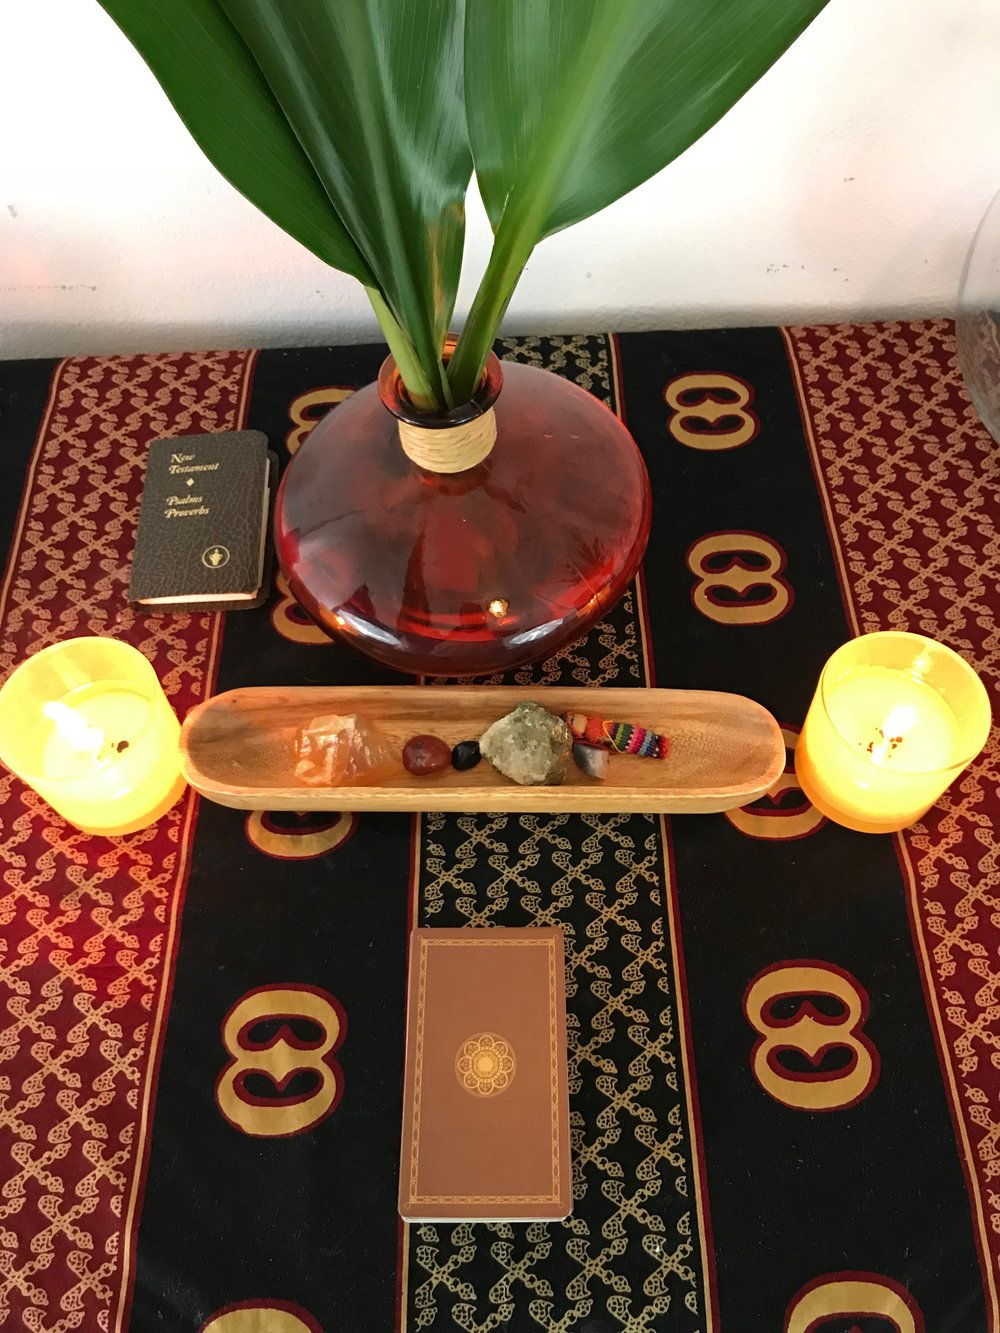 It's All in the Details - So the base of  my alter is an African print fabric. It was gifted to me from a production I worked on. I was gifted different prints but this one spoke to me the most. Since my print is dark I wanted to add lighter pieces to my alter. I found these candles, vase and long wooden bowl from Ross. These candles has an energizing scent and I light them in the morning to start my day.  I love the shape and color of the vase because it adds more character to the space. I chose this wooden piece because it is small and a light color. I only have a few stones and wanted something separate to keep them in. Of course my tarot deck is part of my alter. I have been teaching myself how to read tarot cards. I use to be weary of them because of my Christian upbringing but I've only had positive experiences once I started receiving readings. I'm definitely excited about becoming more familiar with my tarot cards.